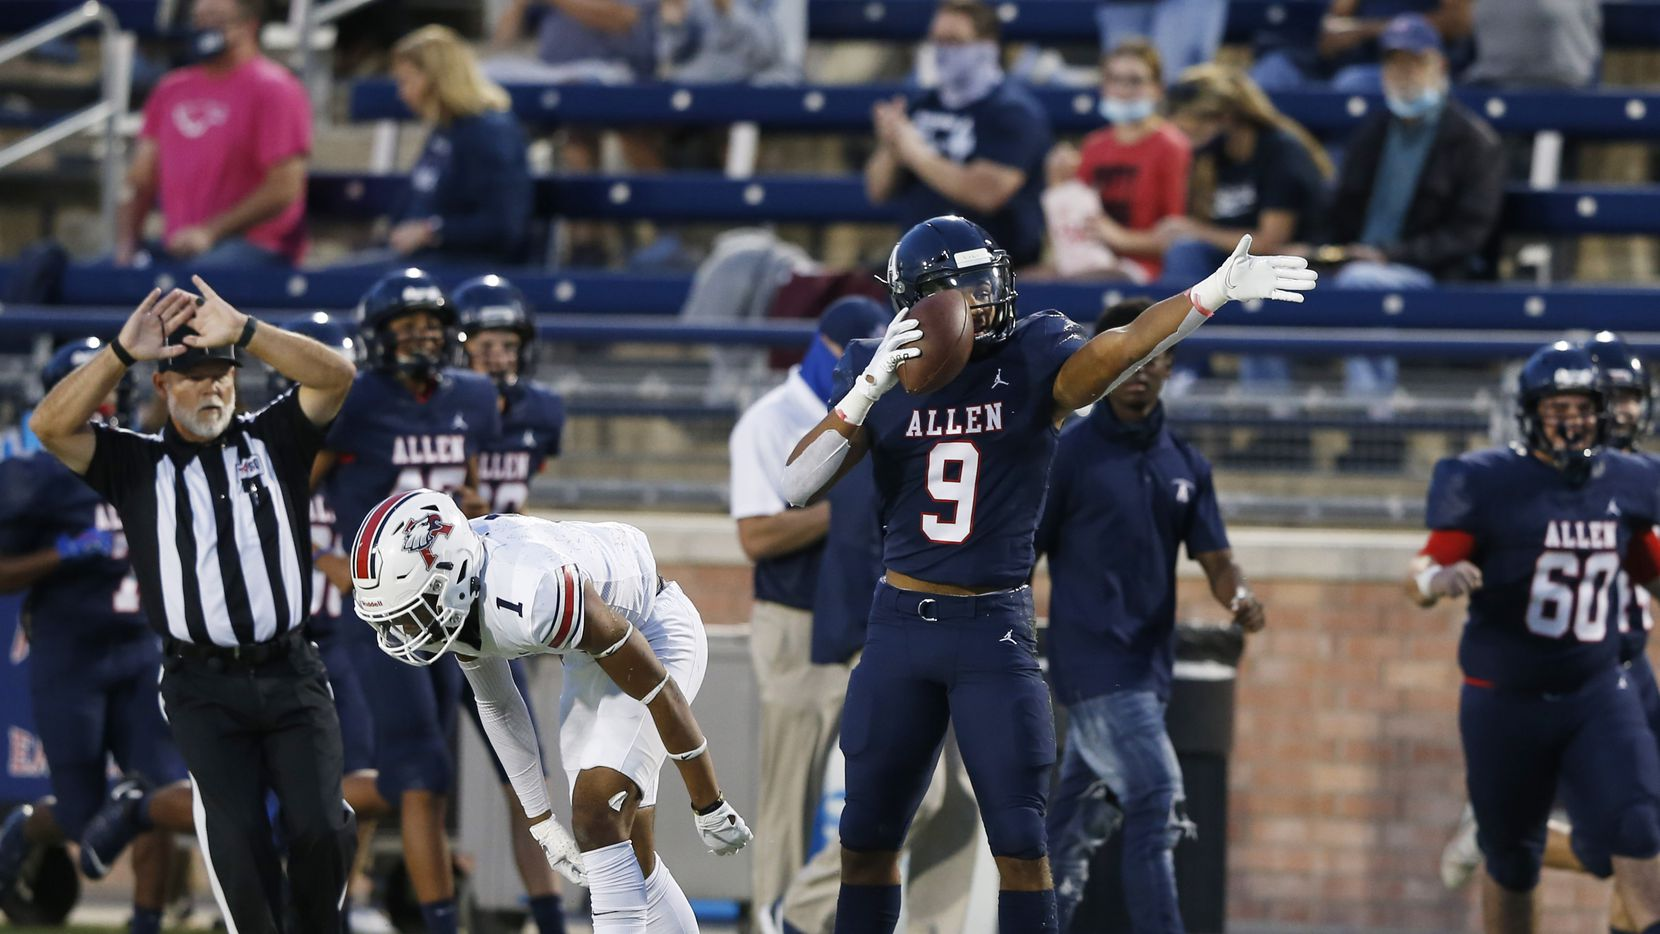 Allen's Bryson Green (9) signals the first down after making a catch in front of Humble Atascocita's Jordan Augustine (1) during the first quarter of play  at Eagle Stadium in Allen, Texas on Friday, October 2, 2020.